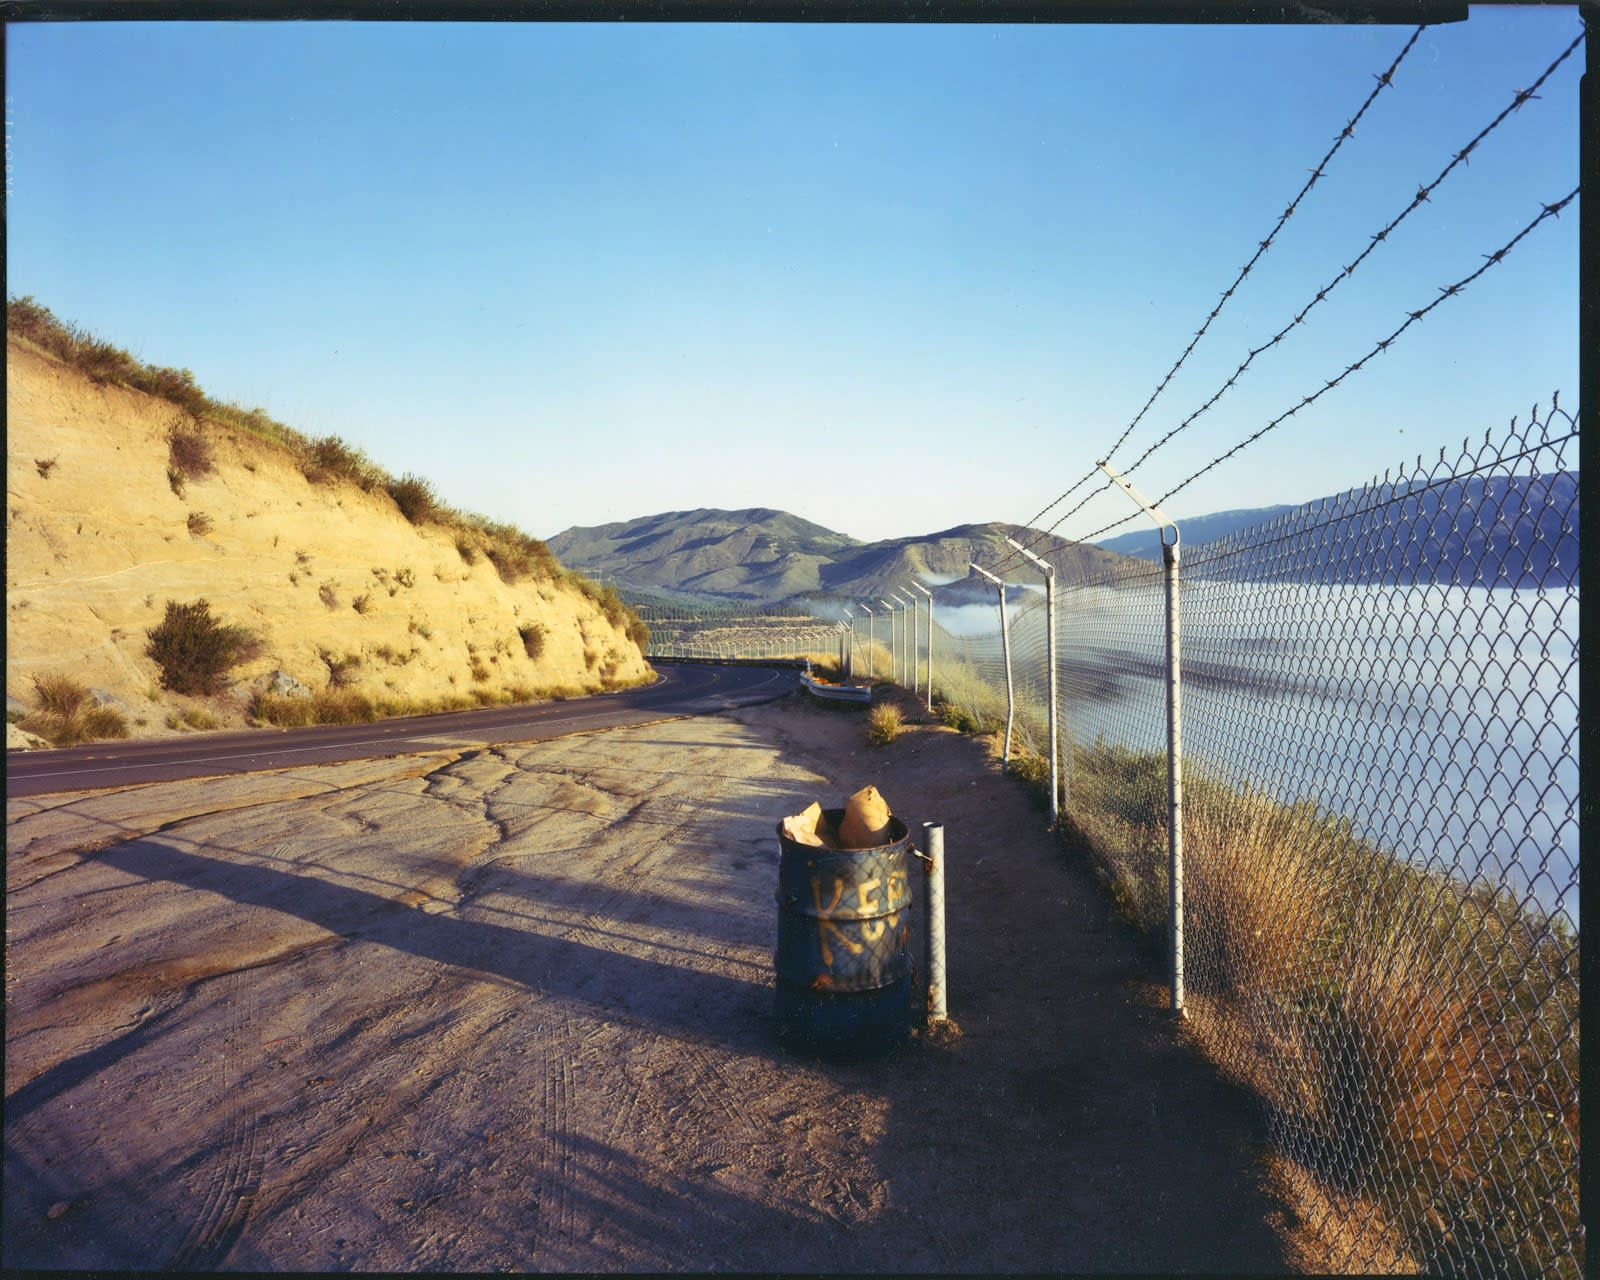 Bruce Wrighton, Hills in distance, eastern berm on left, chian-link fence on right, trash can center